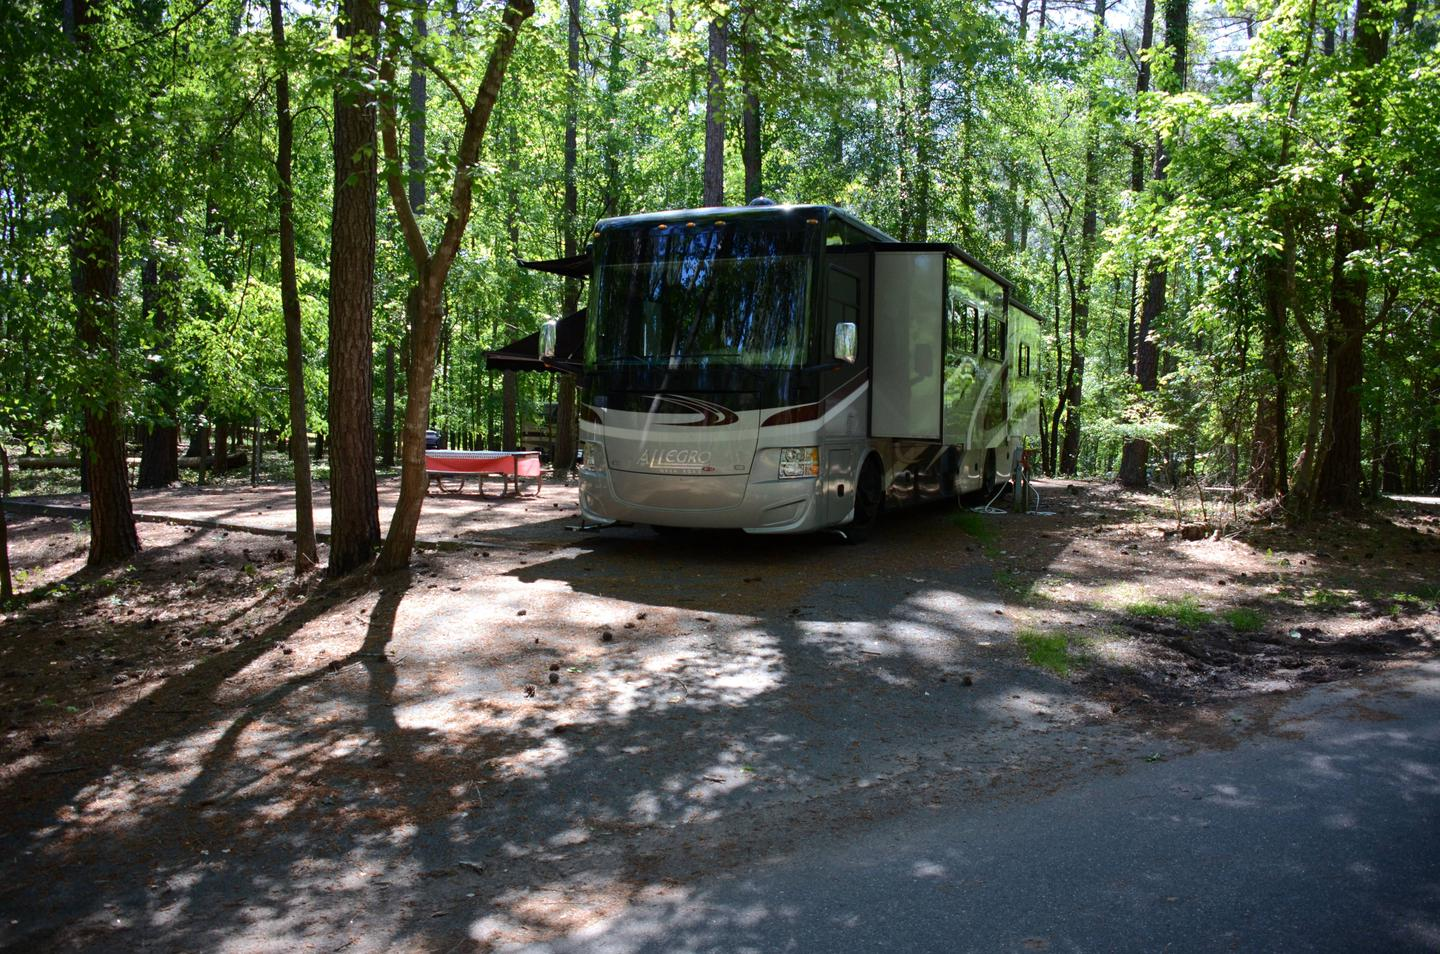 Pull-thru exit, driveway slope, utilities-side clearance.McKinney Campground, campsite 62.